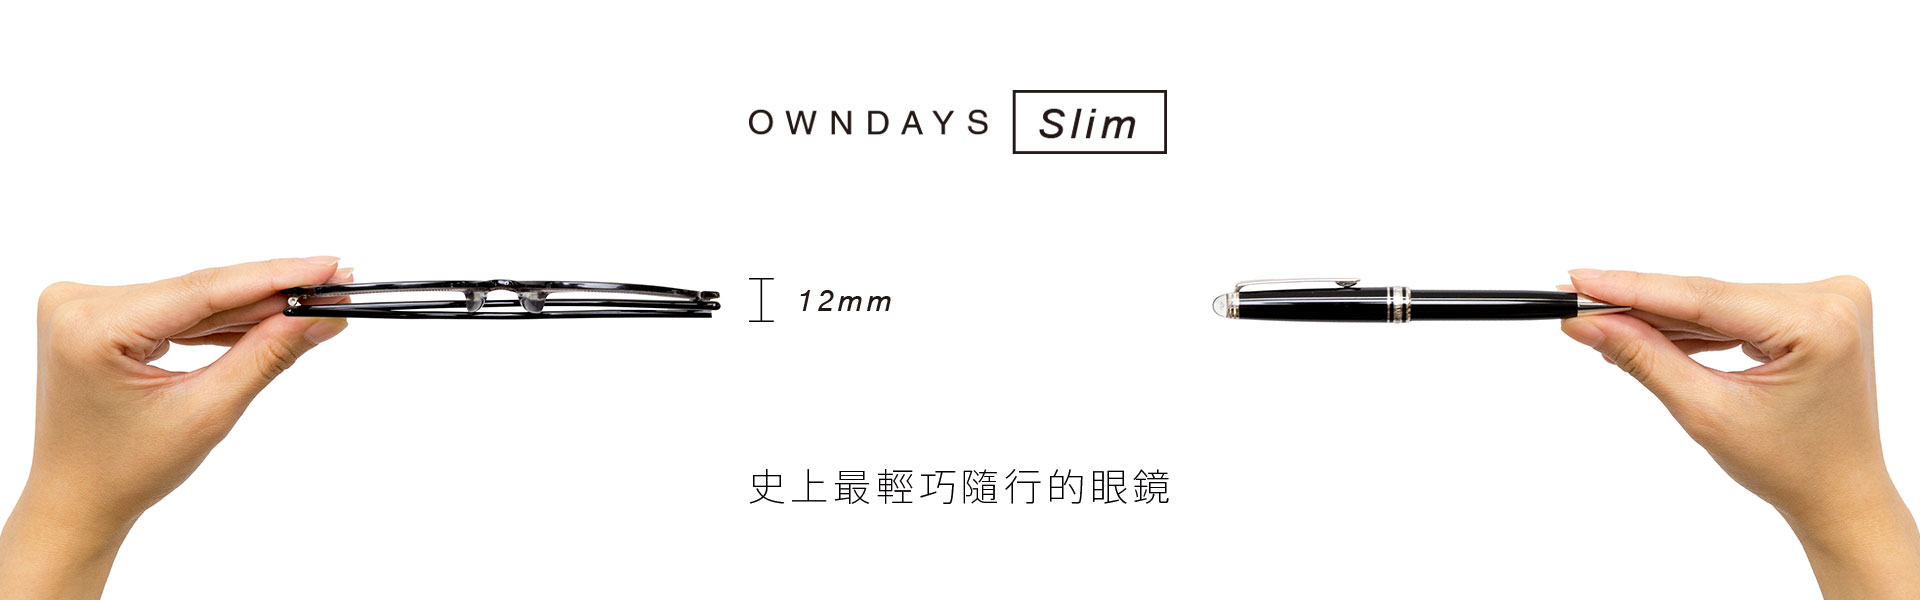 OWNDAYS Slim - Mid 2015